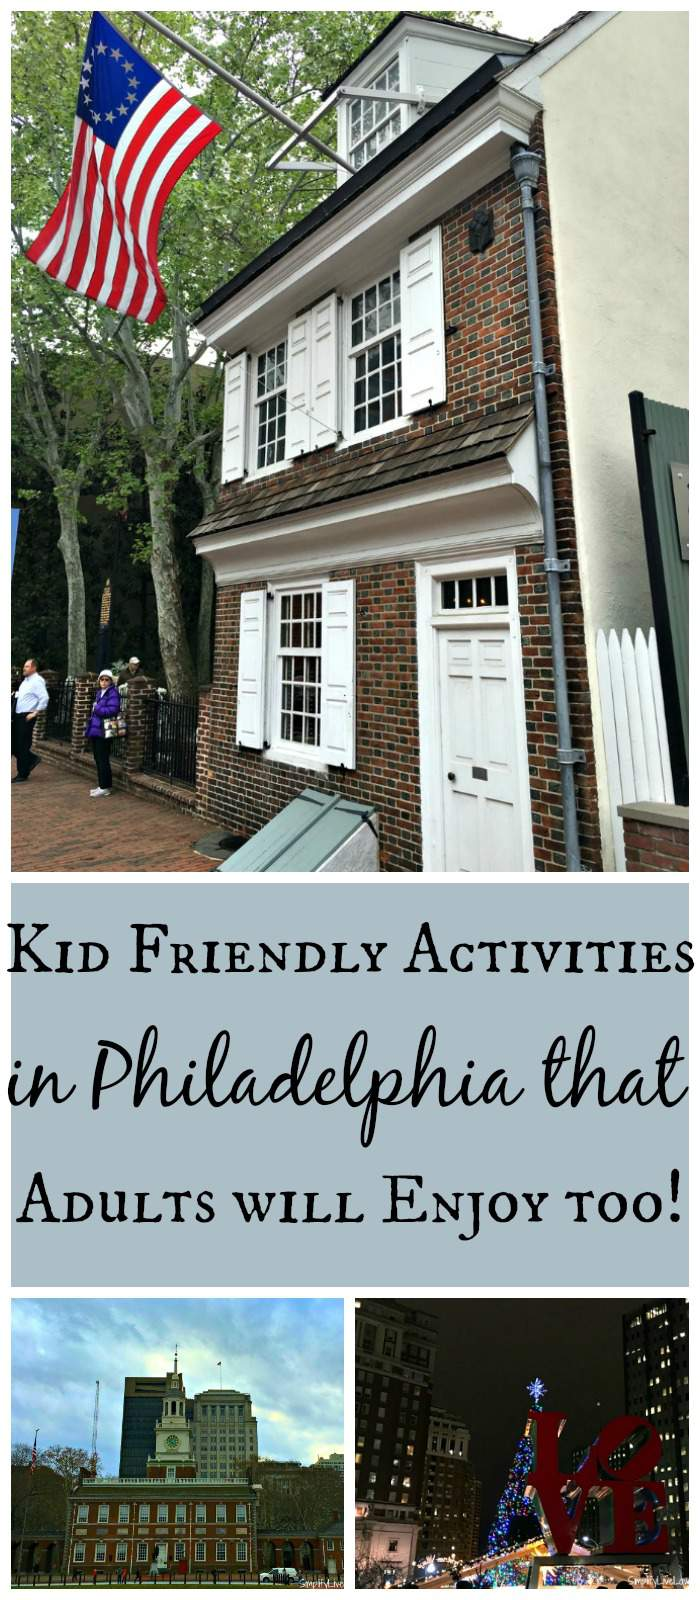 Kid Friendly Activities in Philadelphia that Adults will Enjoy too! pin